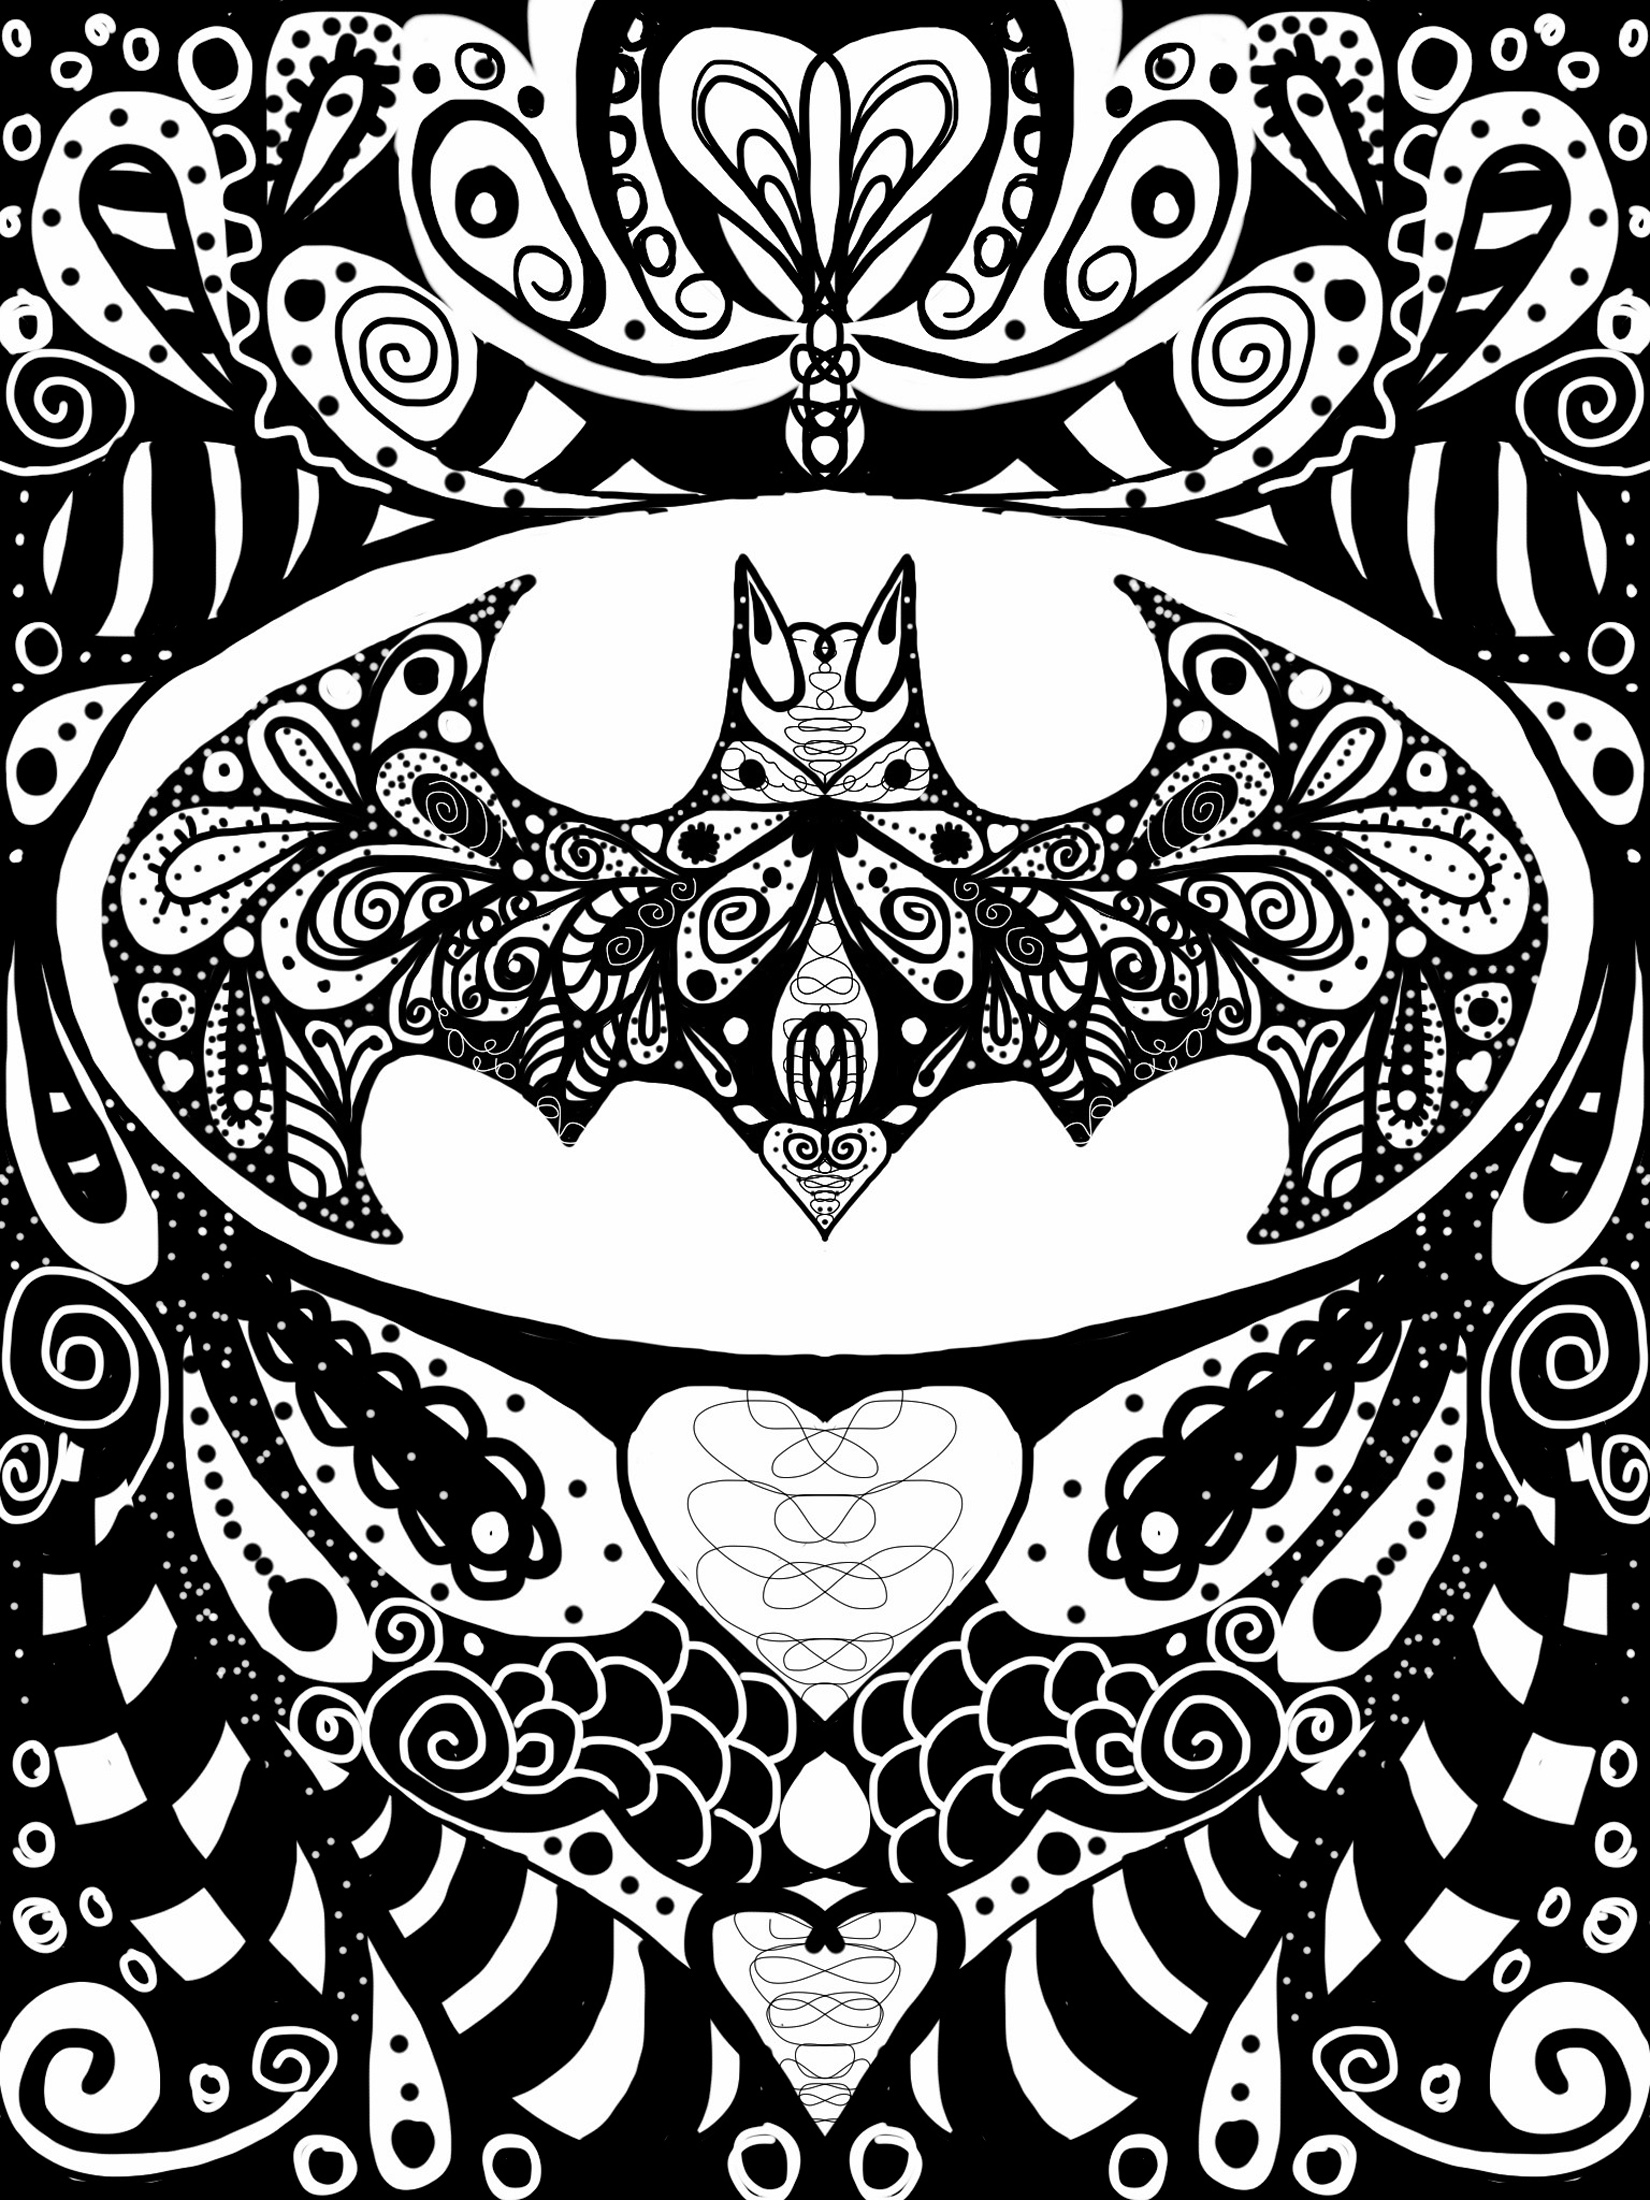 1650x2200 Batman Doodles Zentangle Batman, Wallpaper